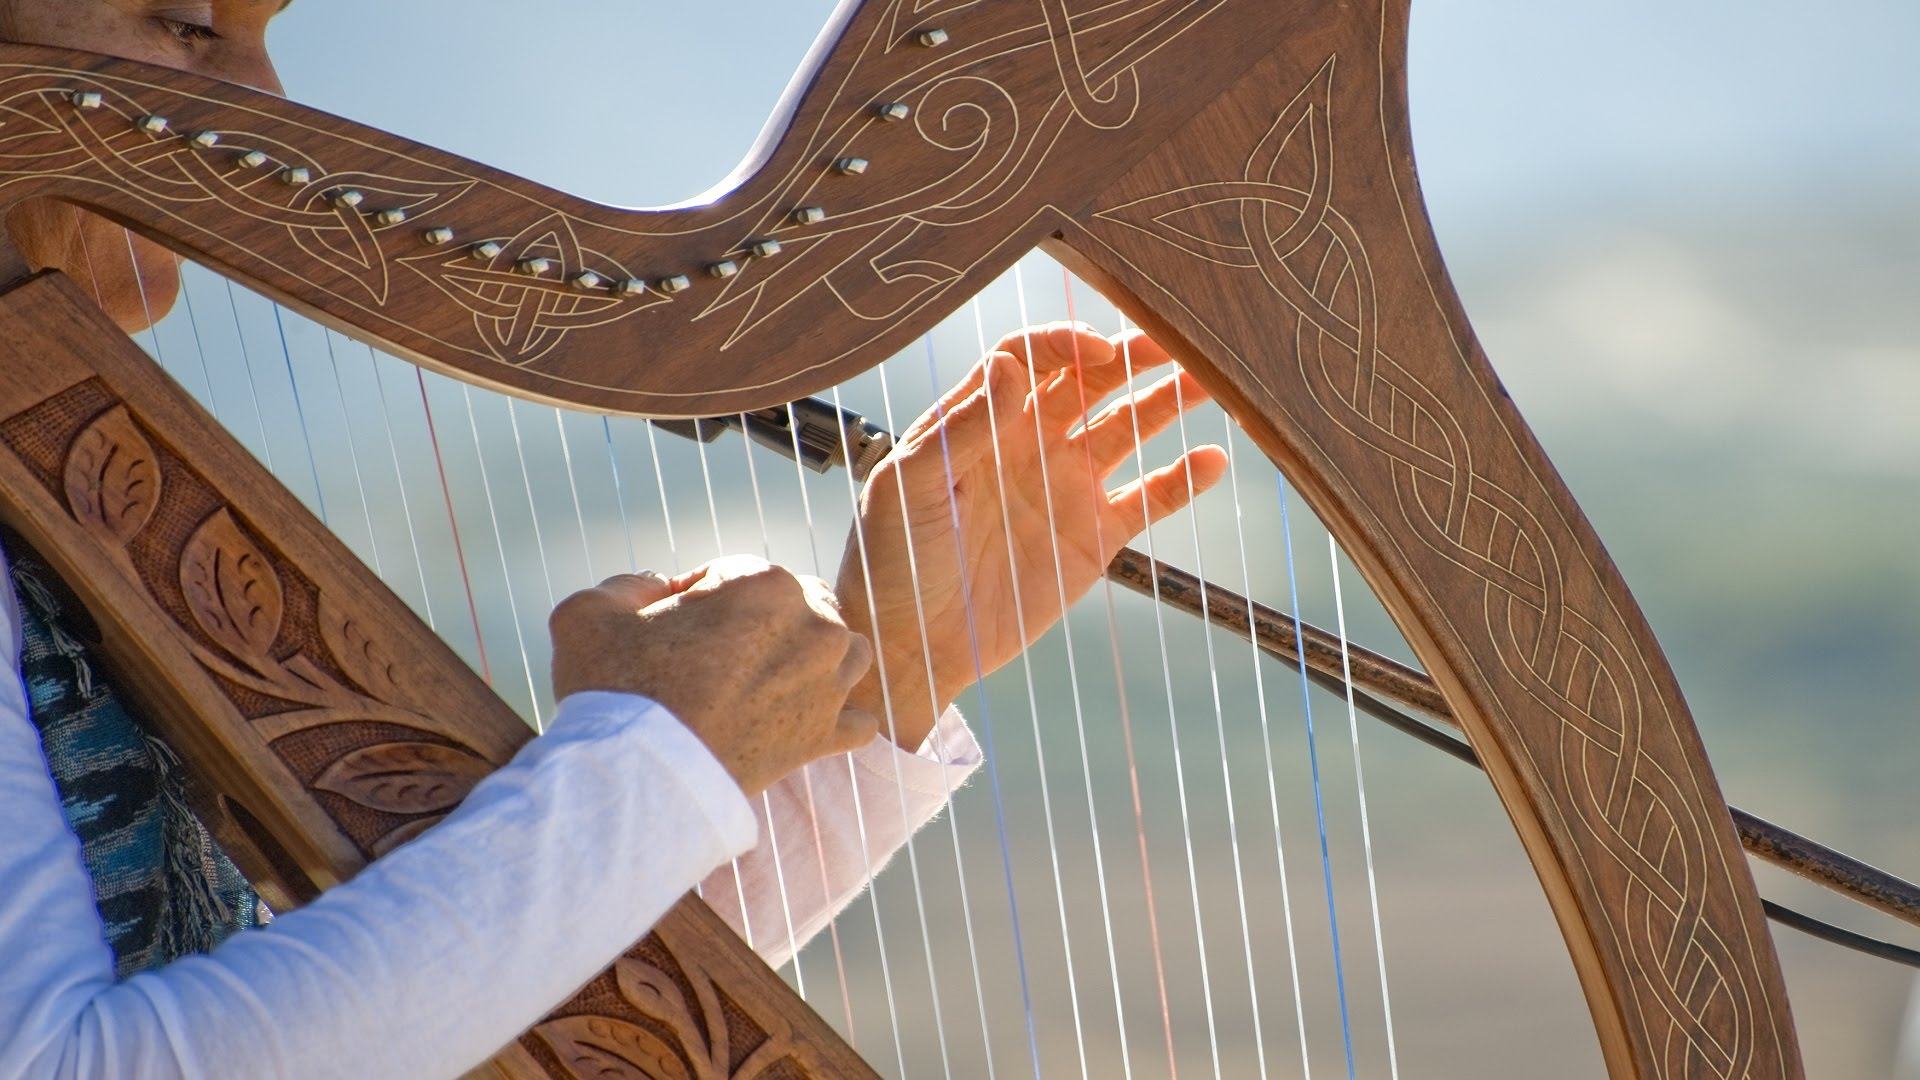 Listen to Classical Music composed by the Harp